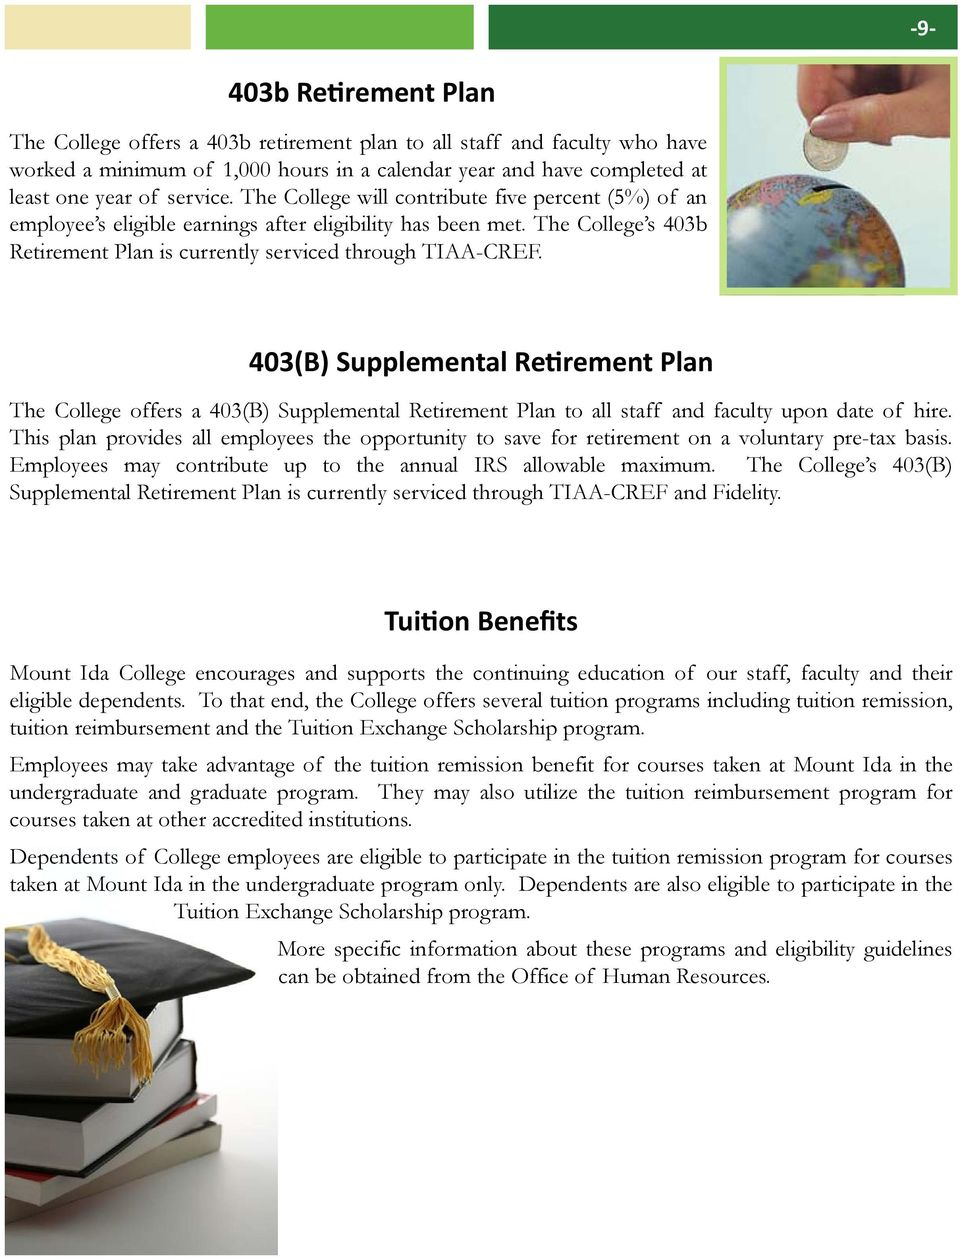 403(B) Supplemental Retirement Plan The College offers a 403(B) Supplemental Retirement Plan to all staff and faculty upon date of hire.